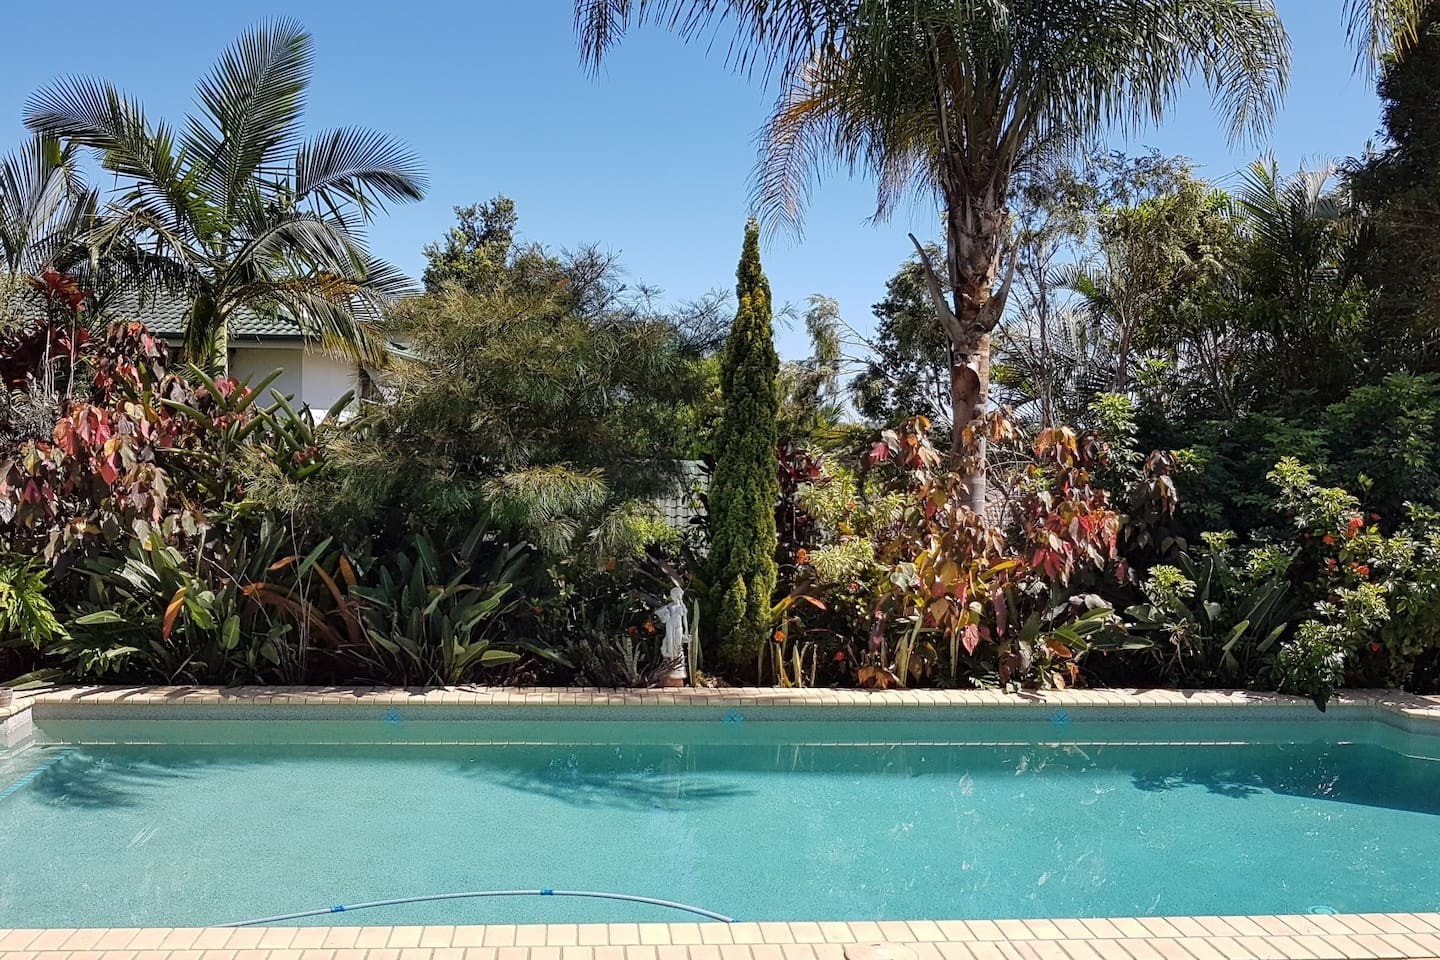 Resort style living in the beautiful Sunshine Coast, with a relaxing Spa and a large swimming pool to cool off.